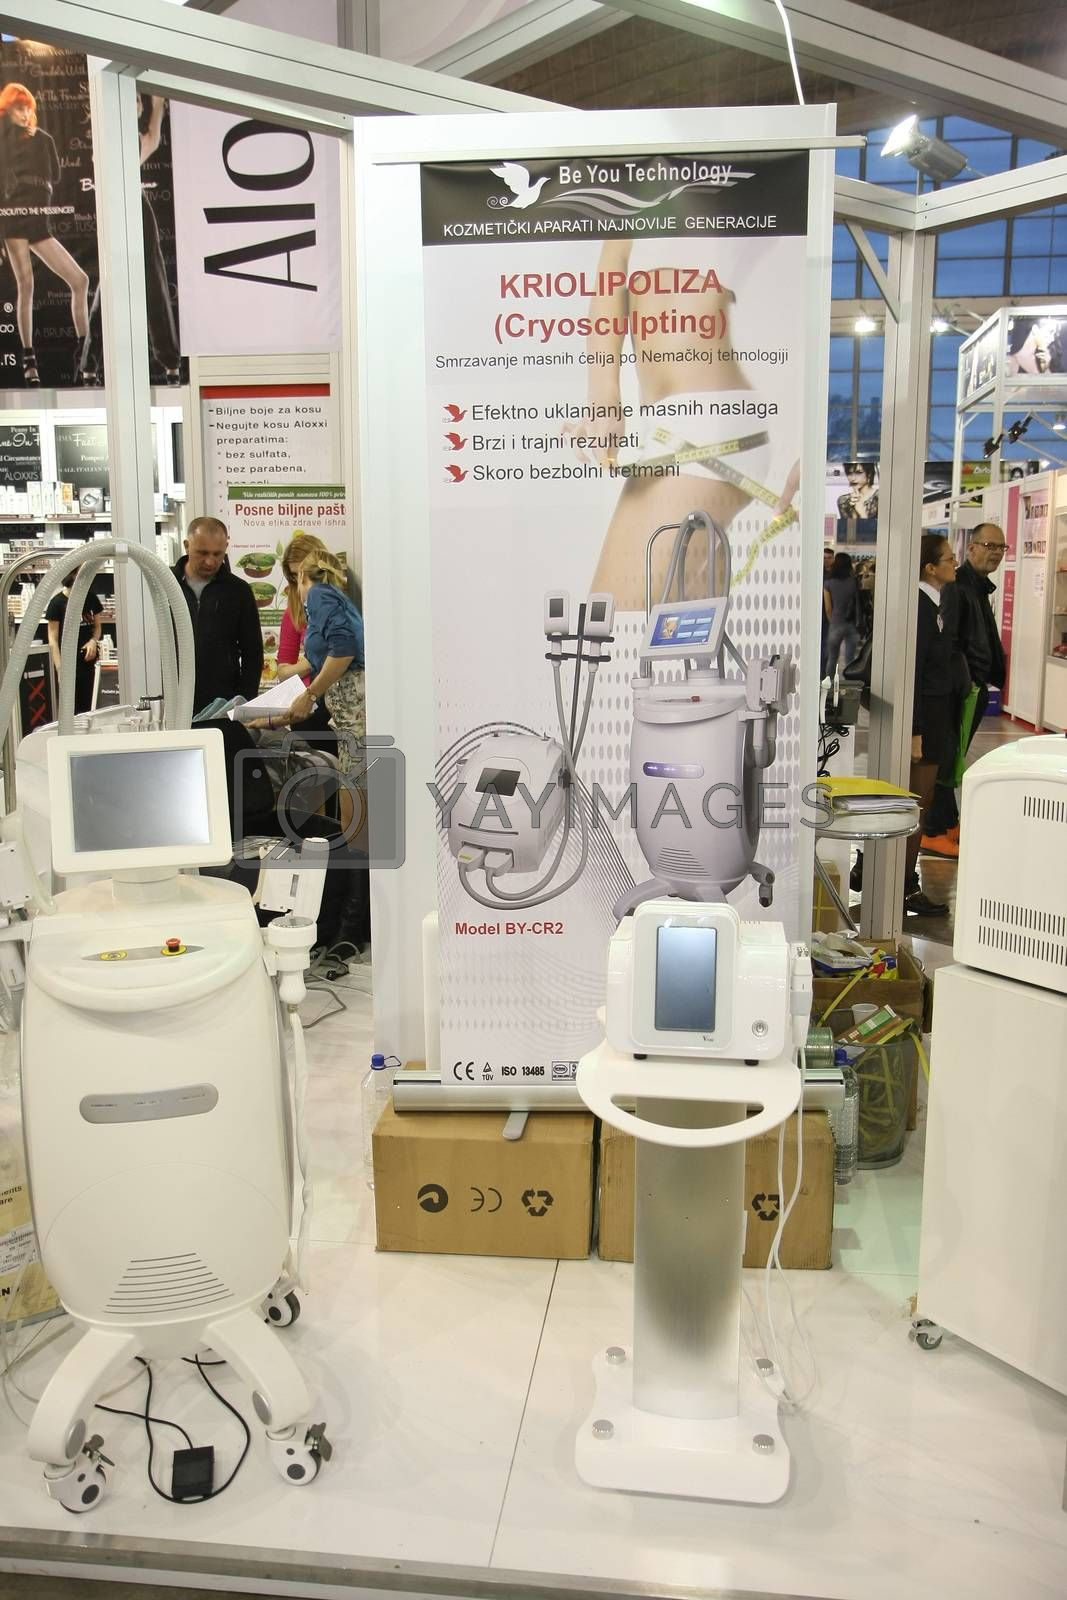 Equipment at 27th international fair and congress of cosmetics,The touch of Paris, 27th and 28th April 2016. Belgrade,Serbia